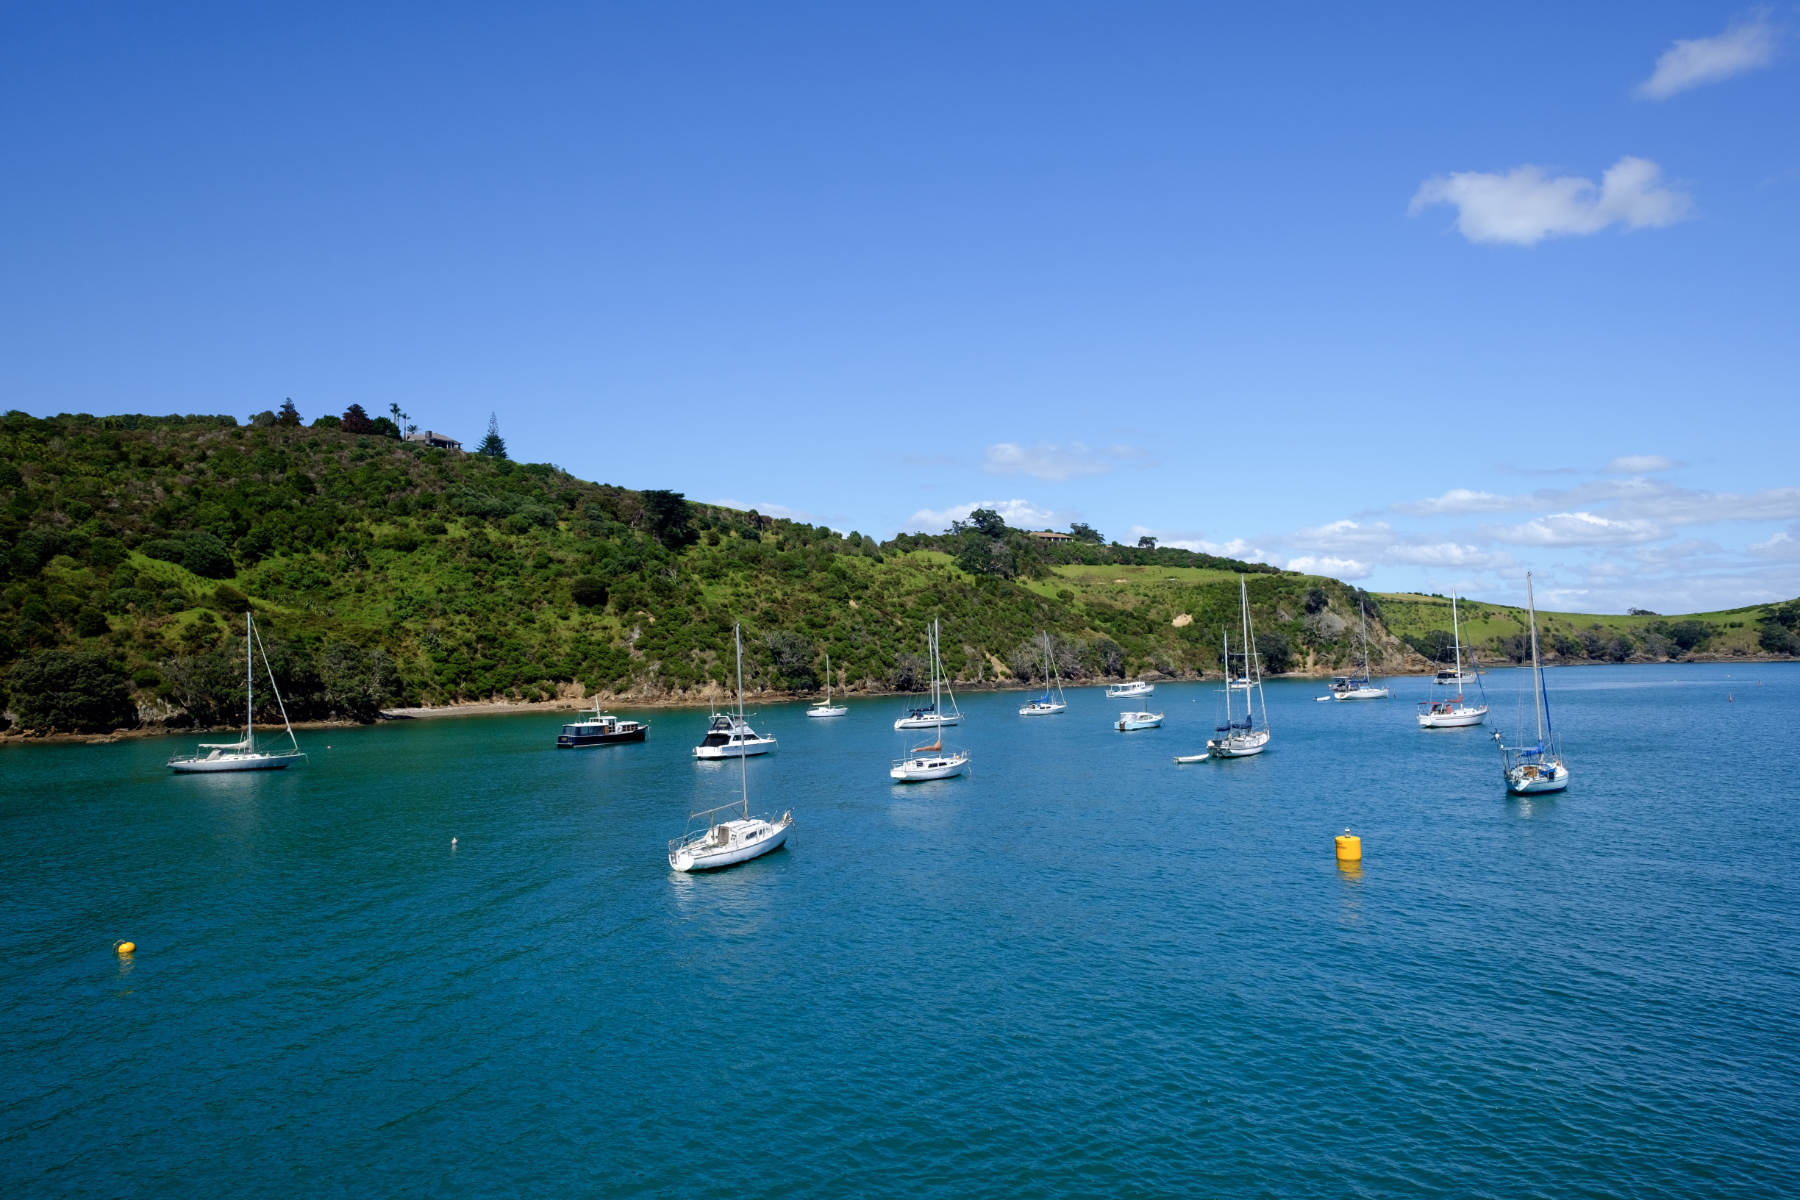 Boats waiheke island new zealand